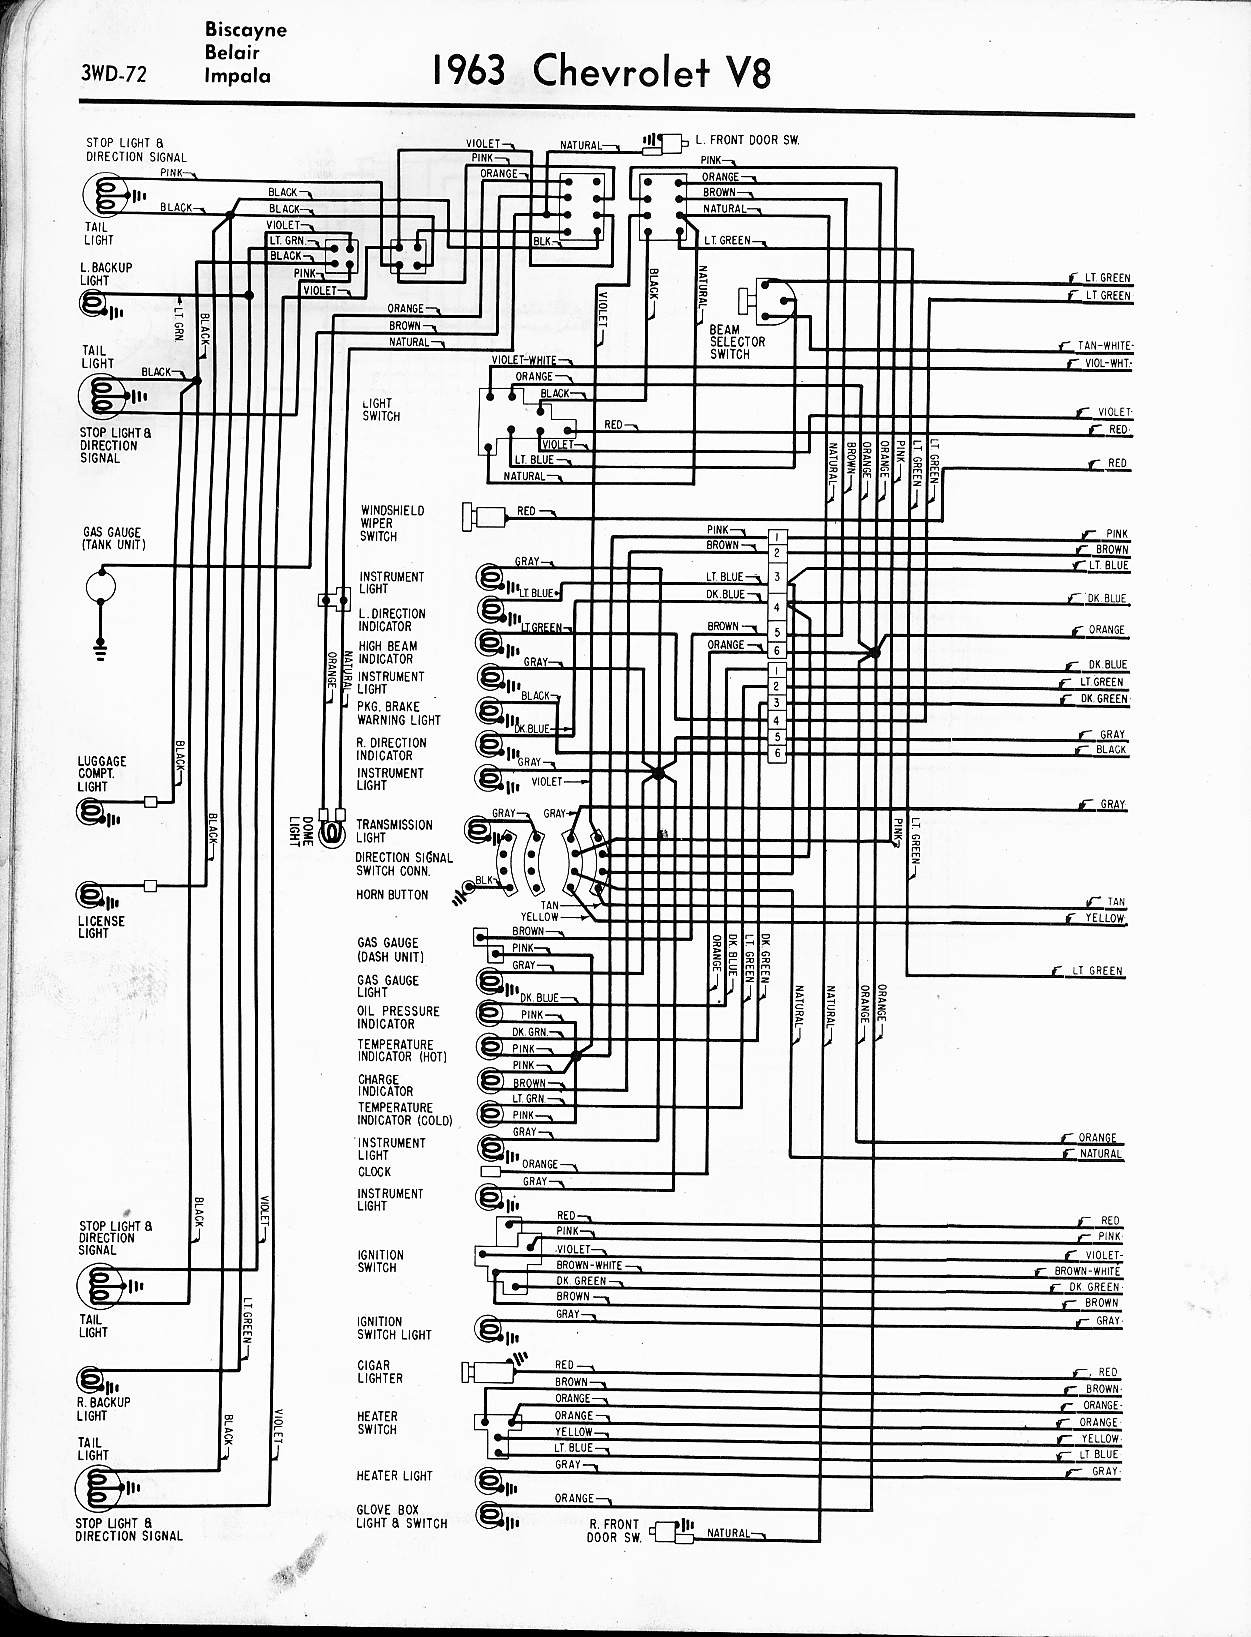 66 Impala Ss Wiring Diagram Books Of Caprice 1966 Chevy Wire Center U2022 Rh 207 246 123 107